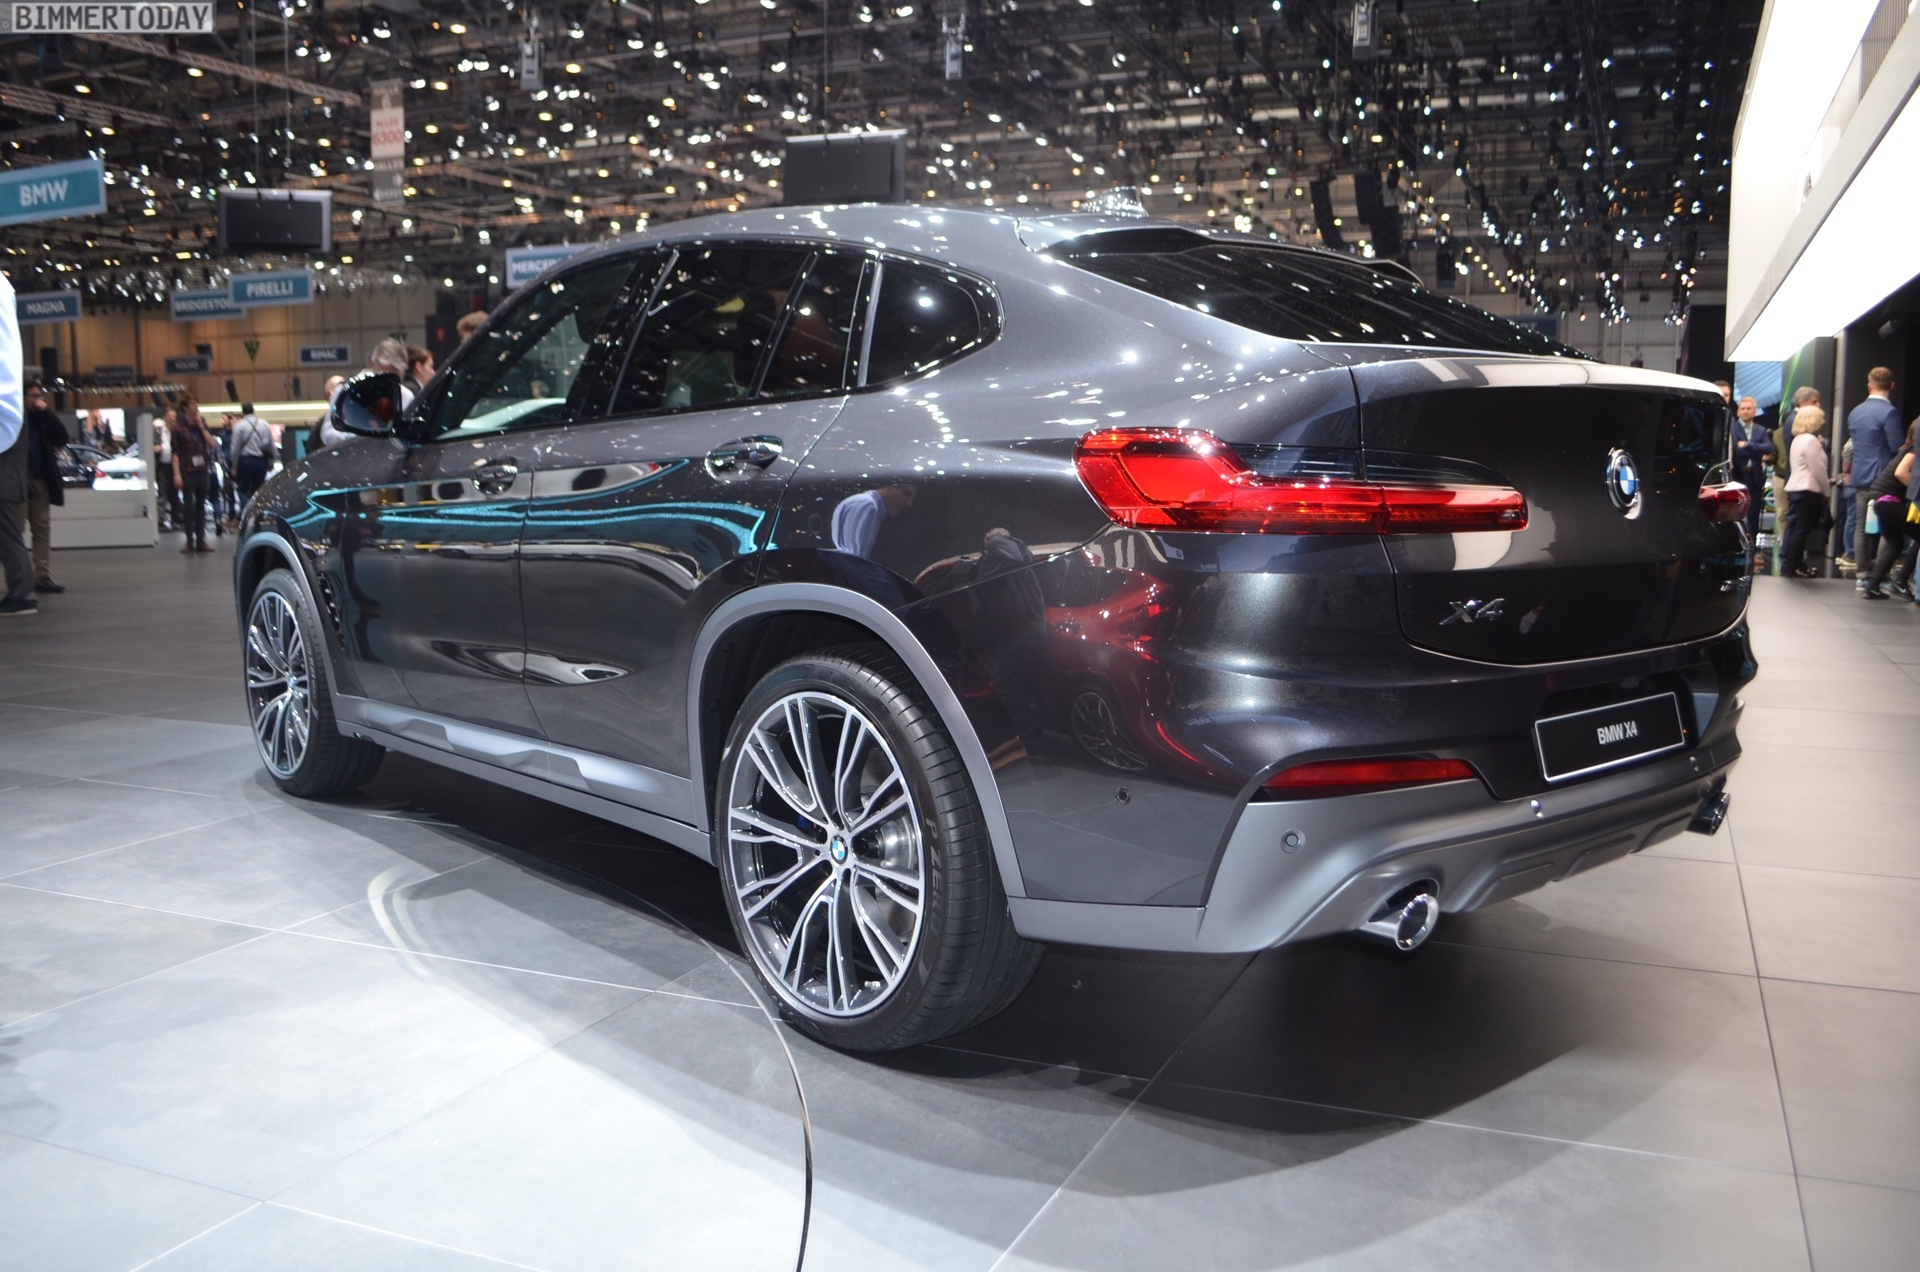 2018 Geneva Motor Show New Bmw X4 In Sophisto Grey